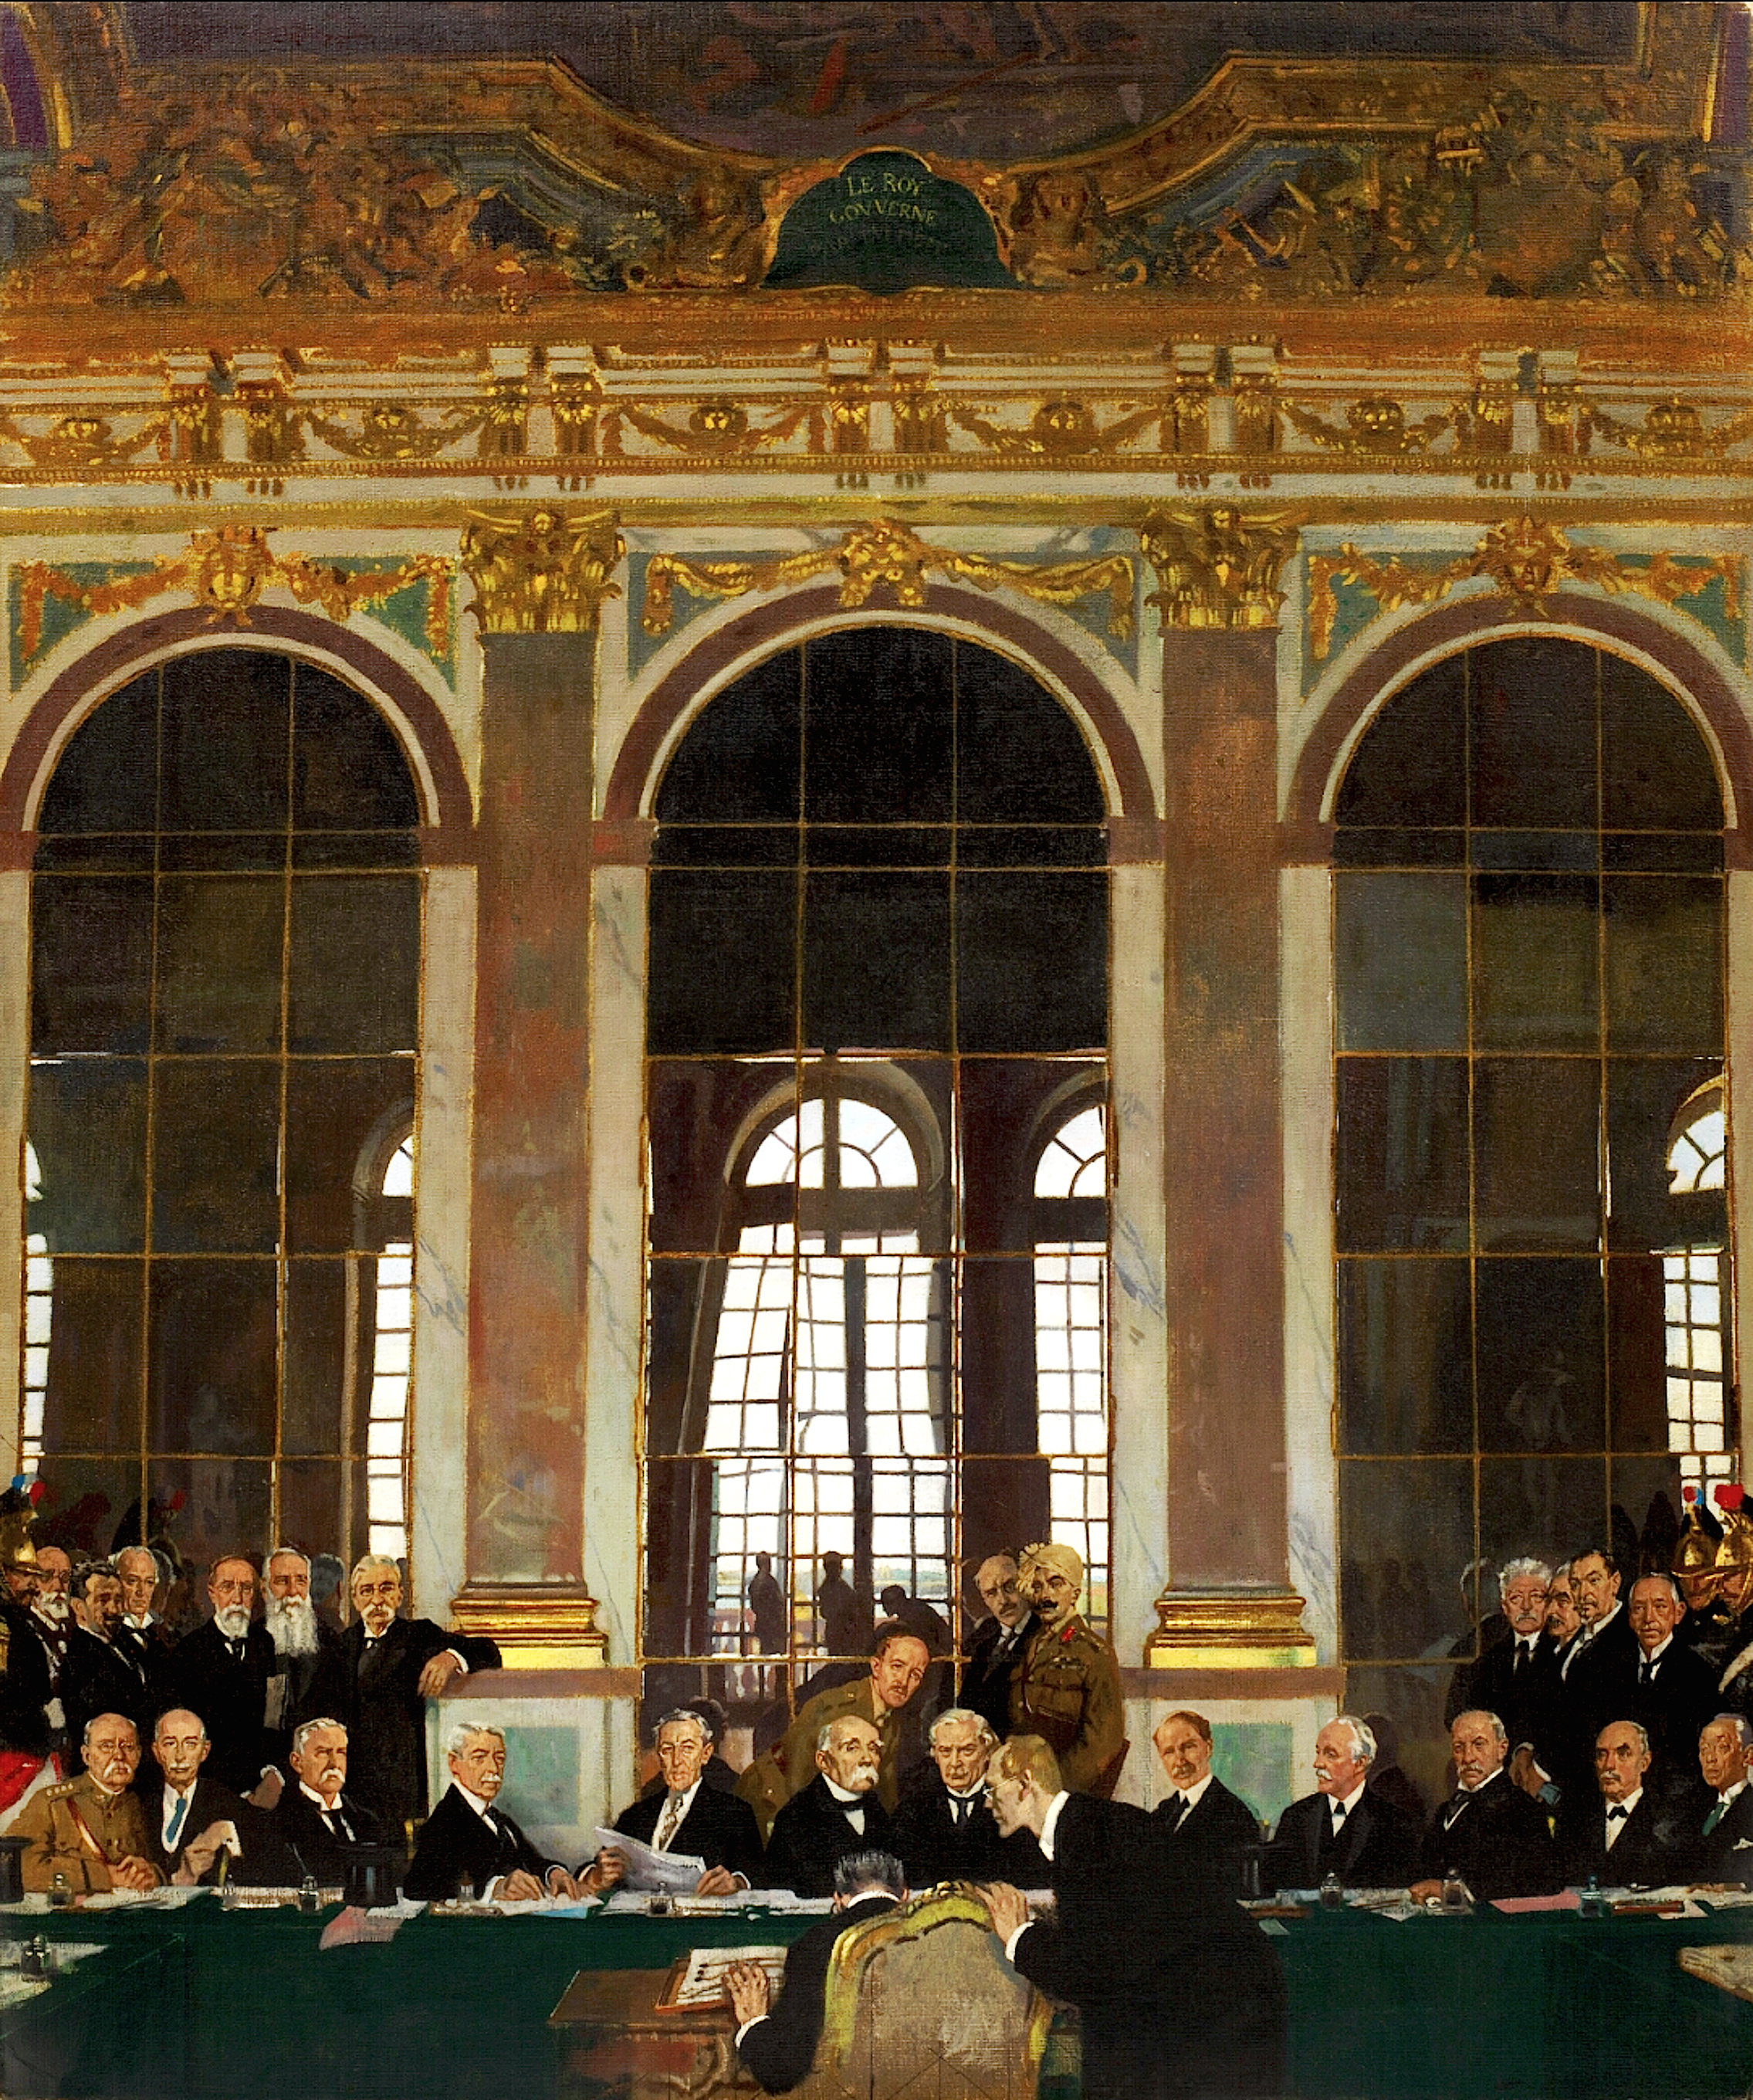 Signing the Treaty of Versailles in the Hall of Mirrors